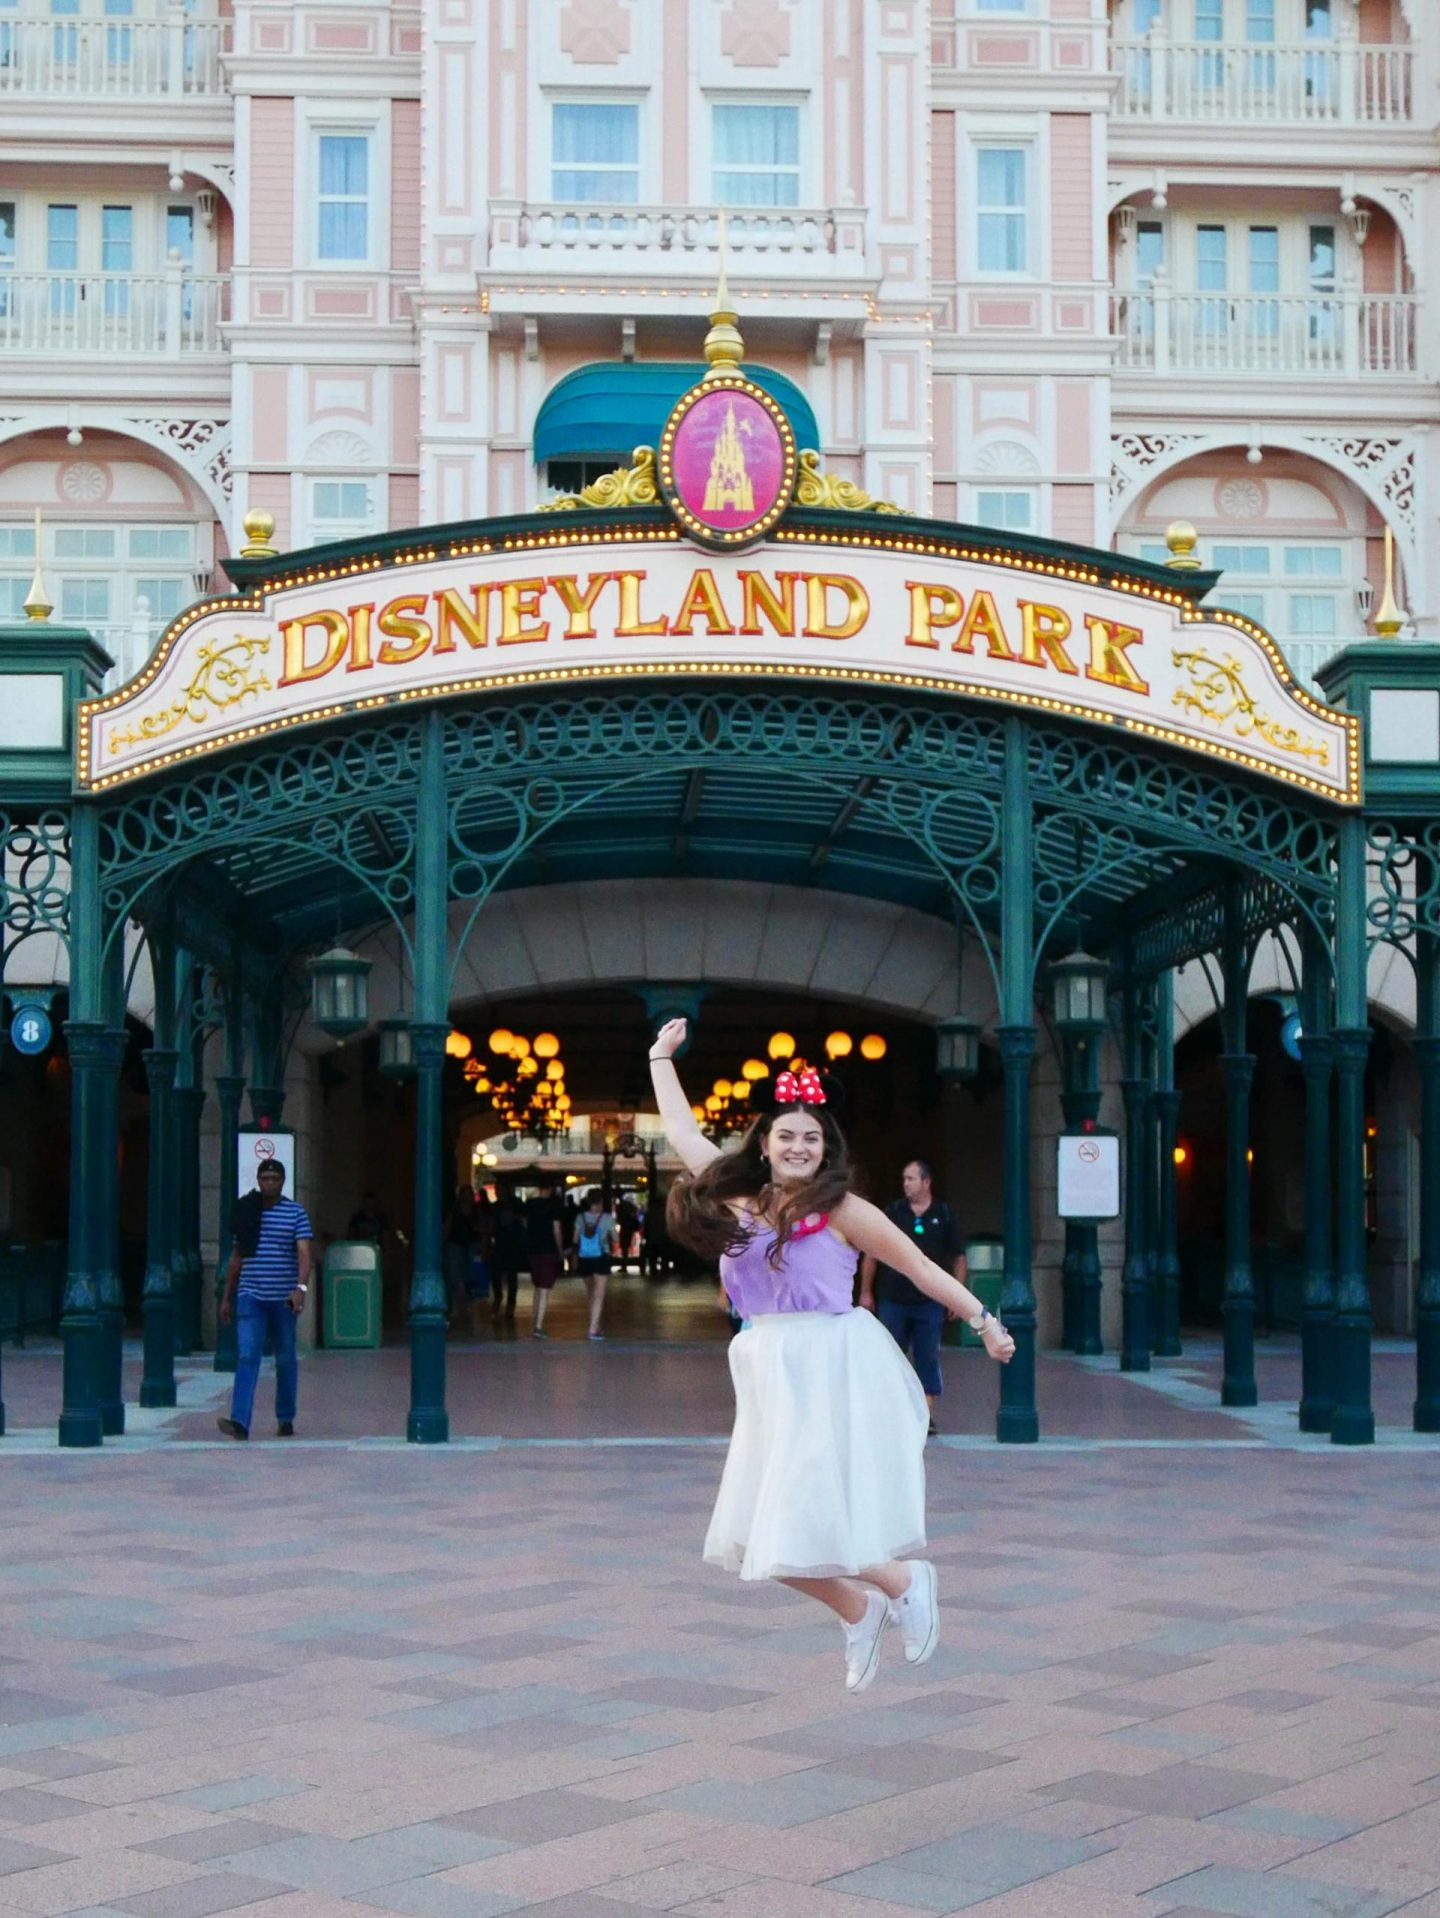 disneyland-paris-my-22nd-birthday-trip-rachel-nicole-uk-travel-disney-blogger-30